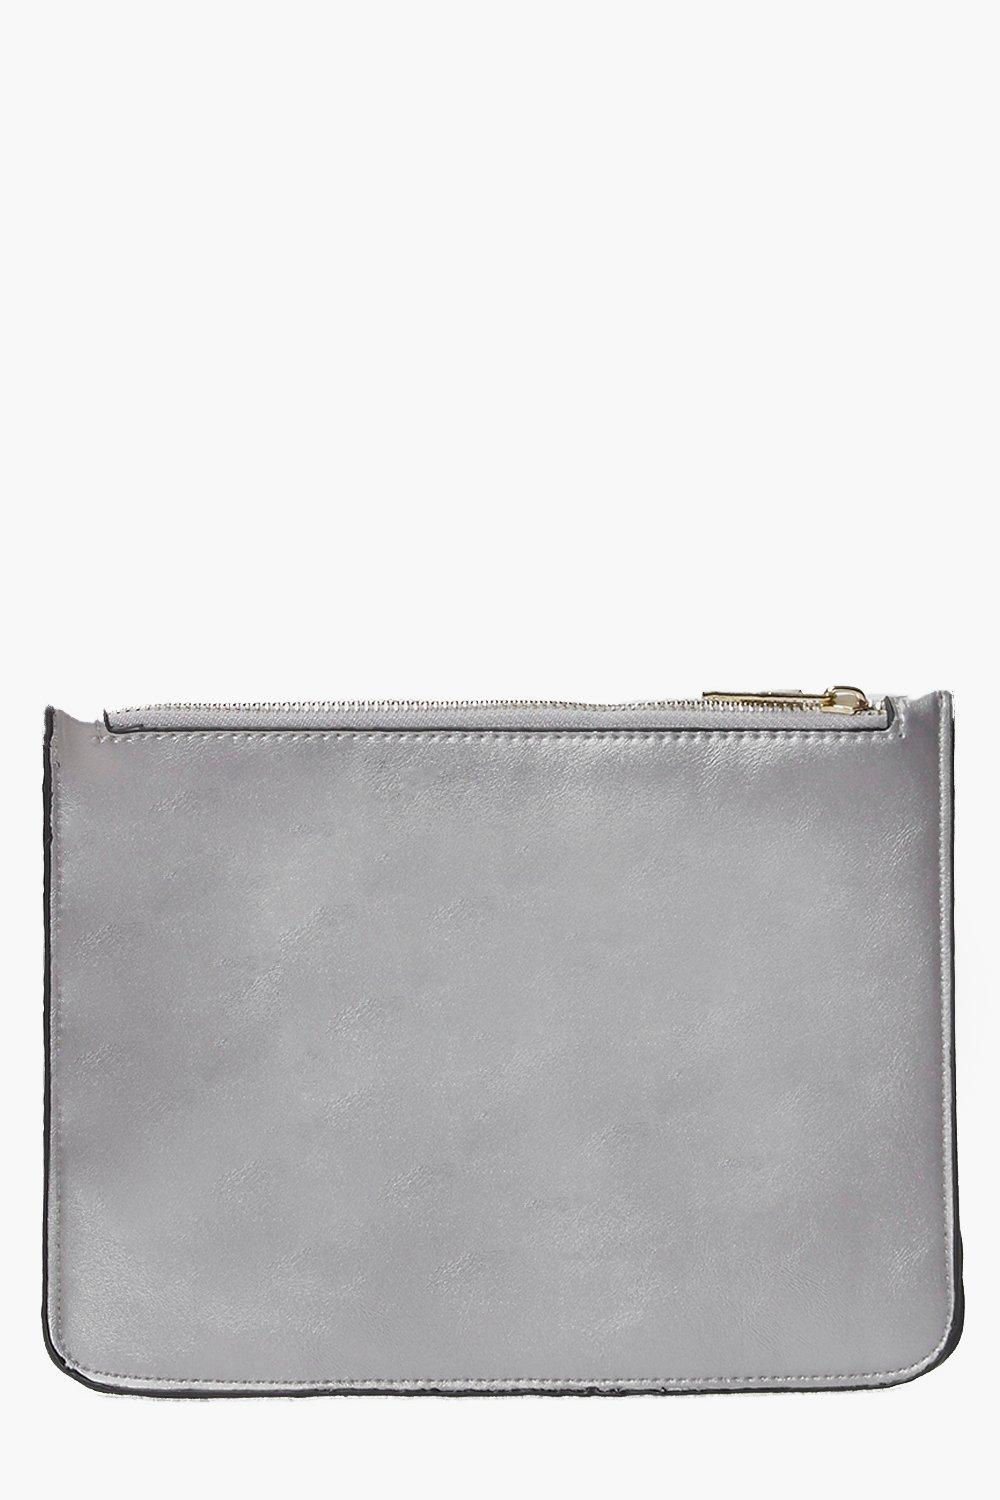 Violet Zip Top Clutch Bag